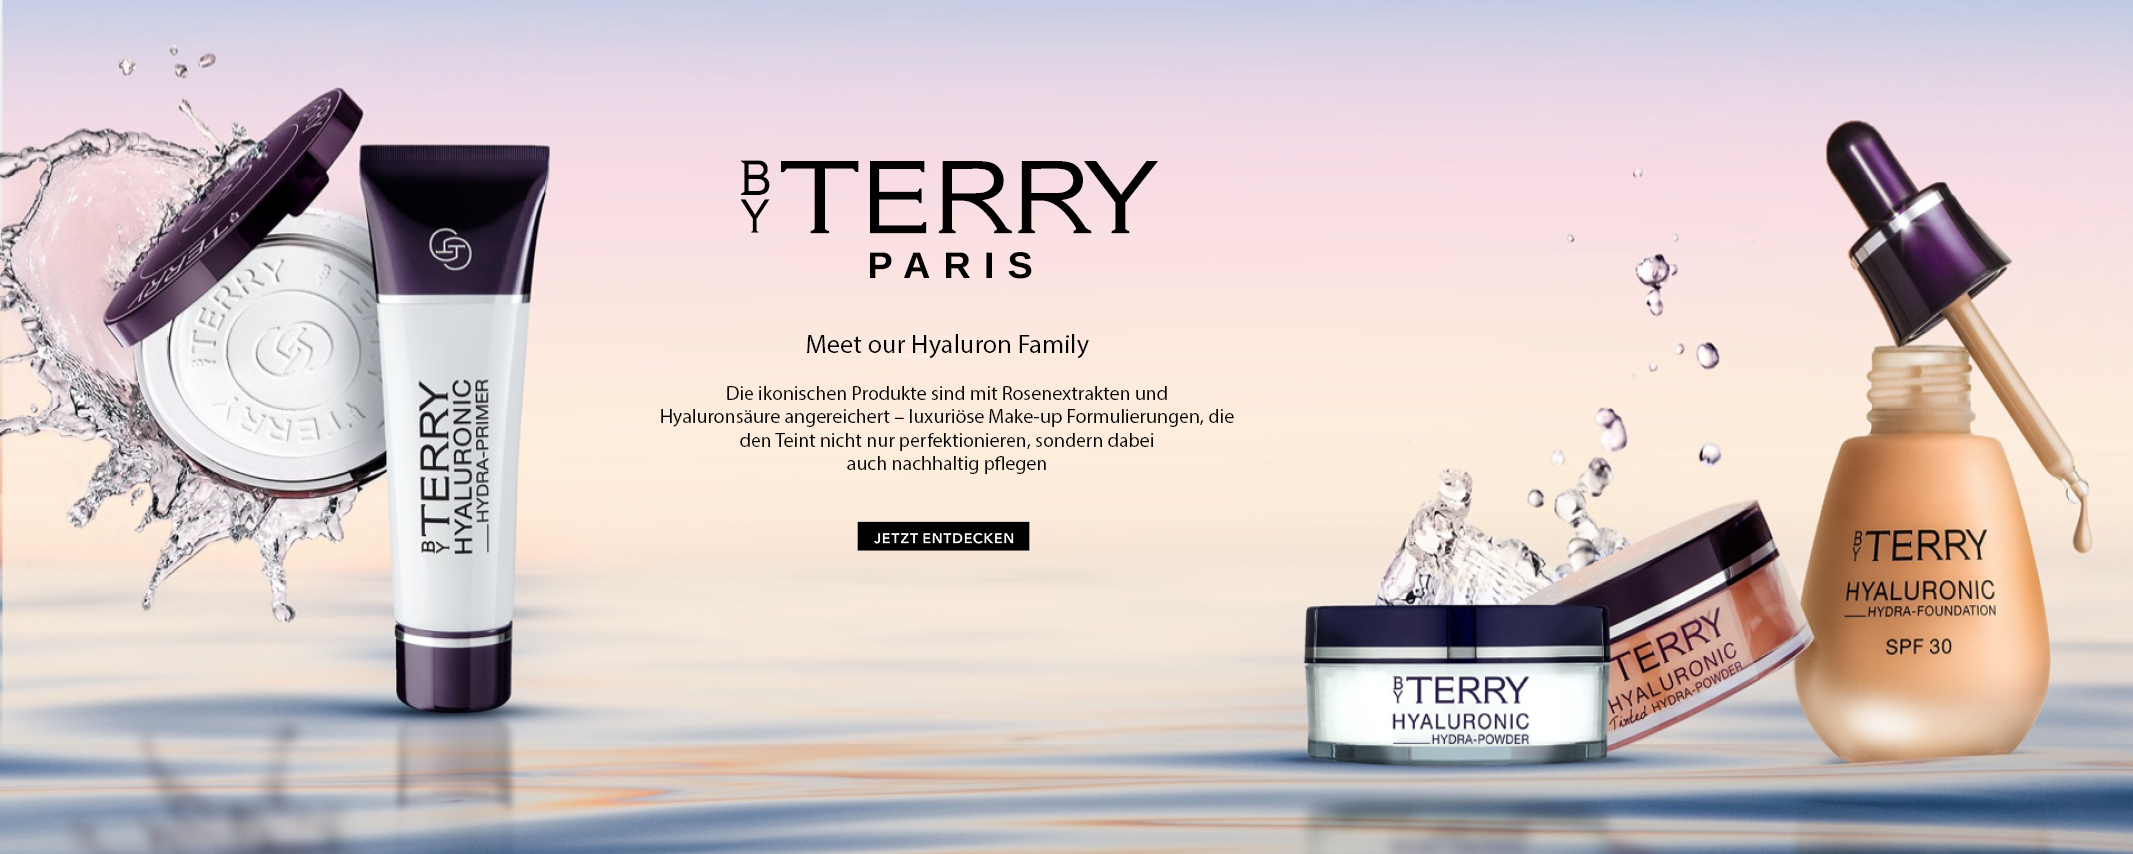 By Terry Hyaluronic Make-up Produkte - jetzt entdecken!